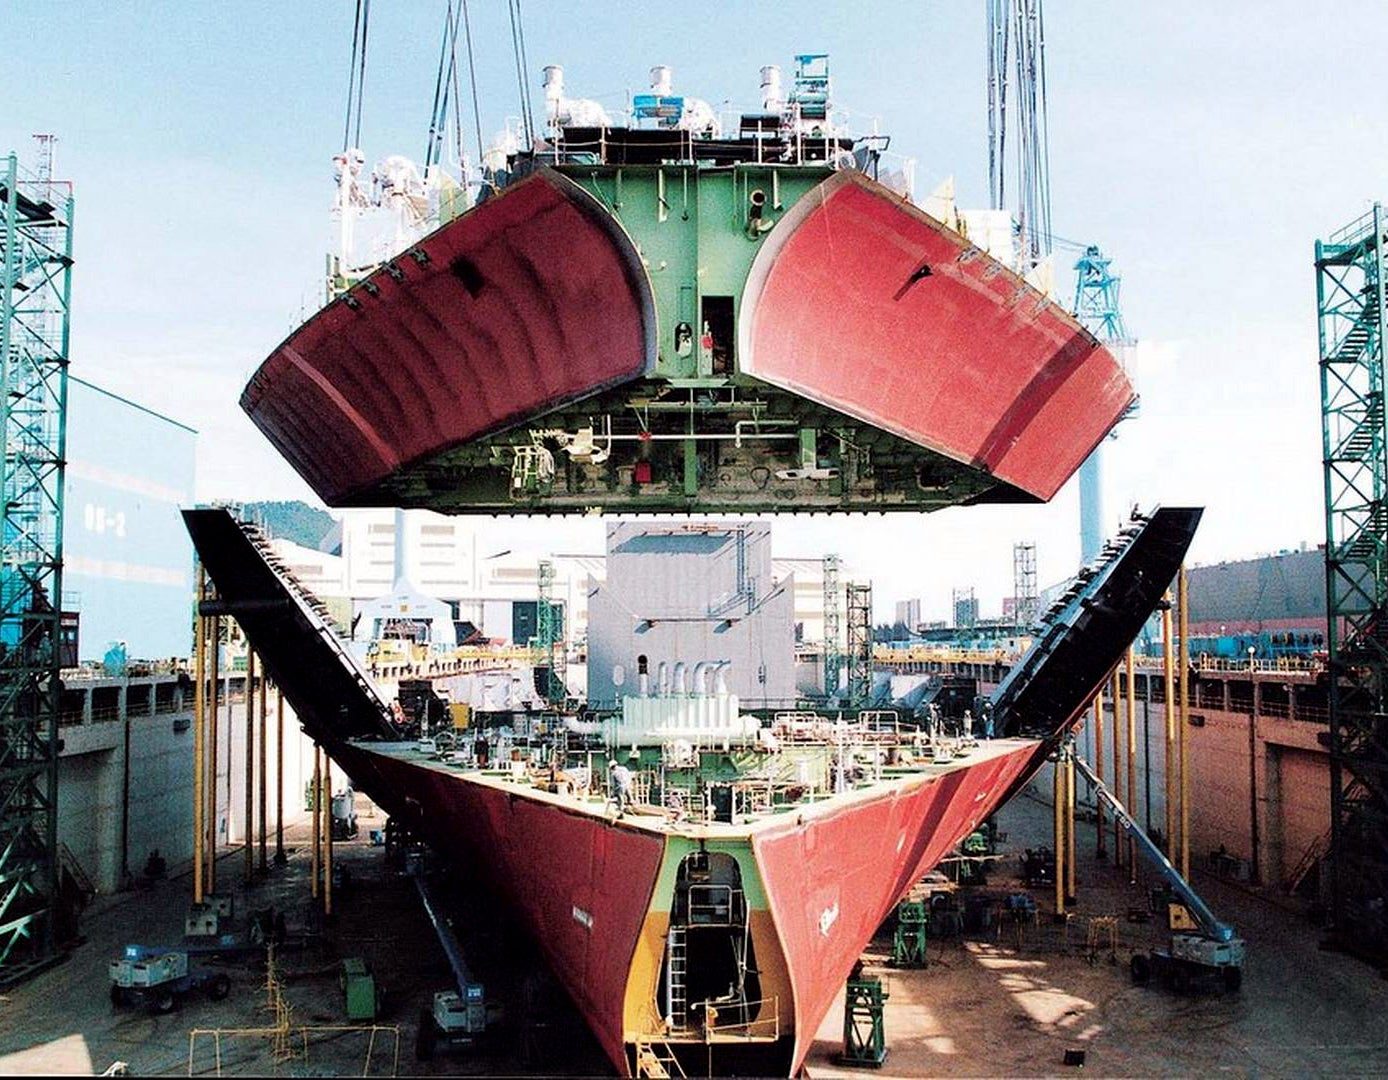 A giant bow suspended over a ship